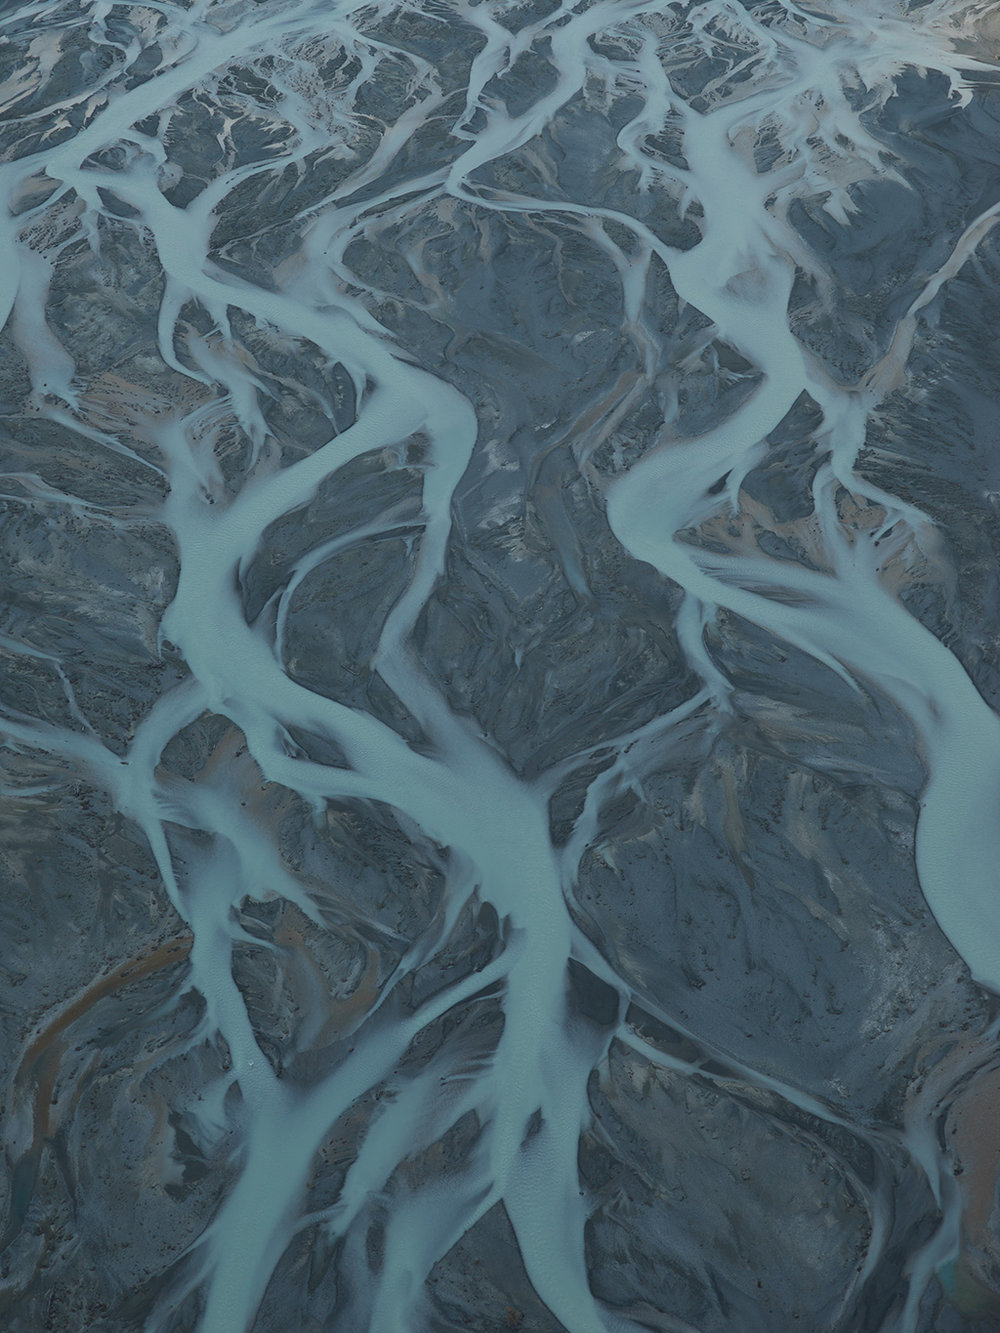 Muench-workshops-braided-river.jpg